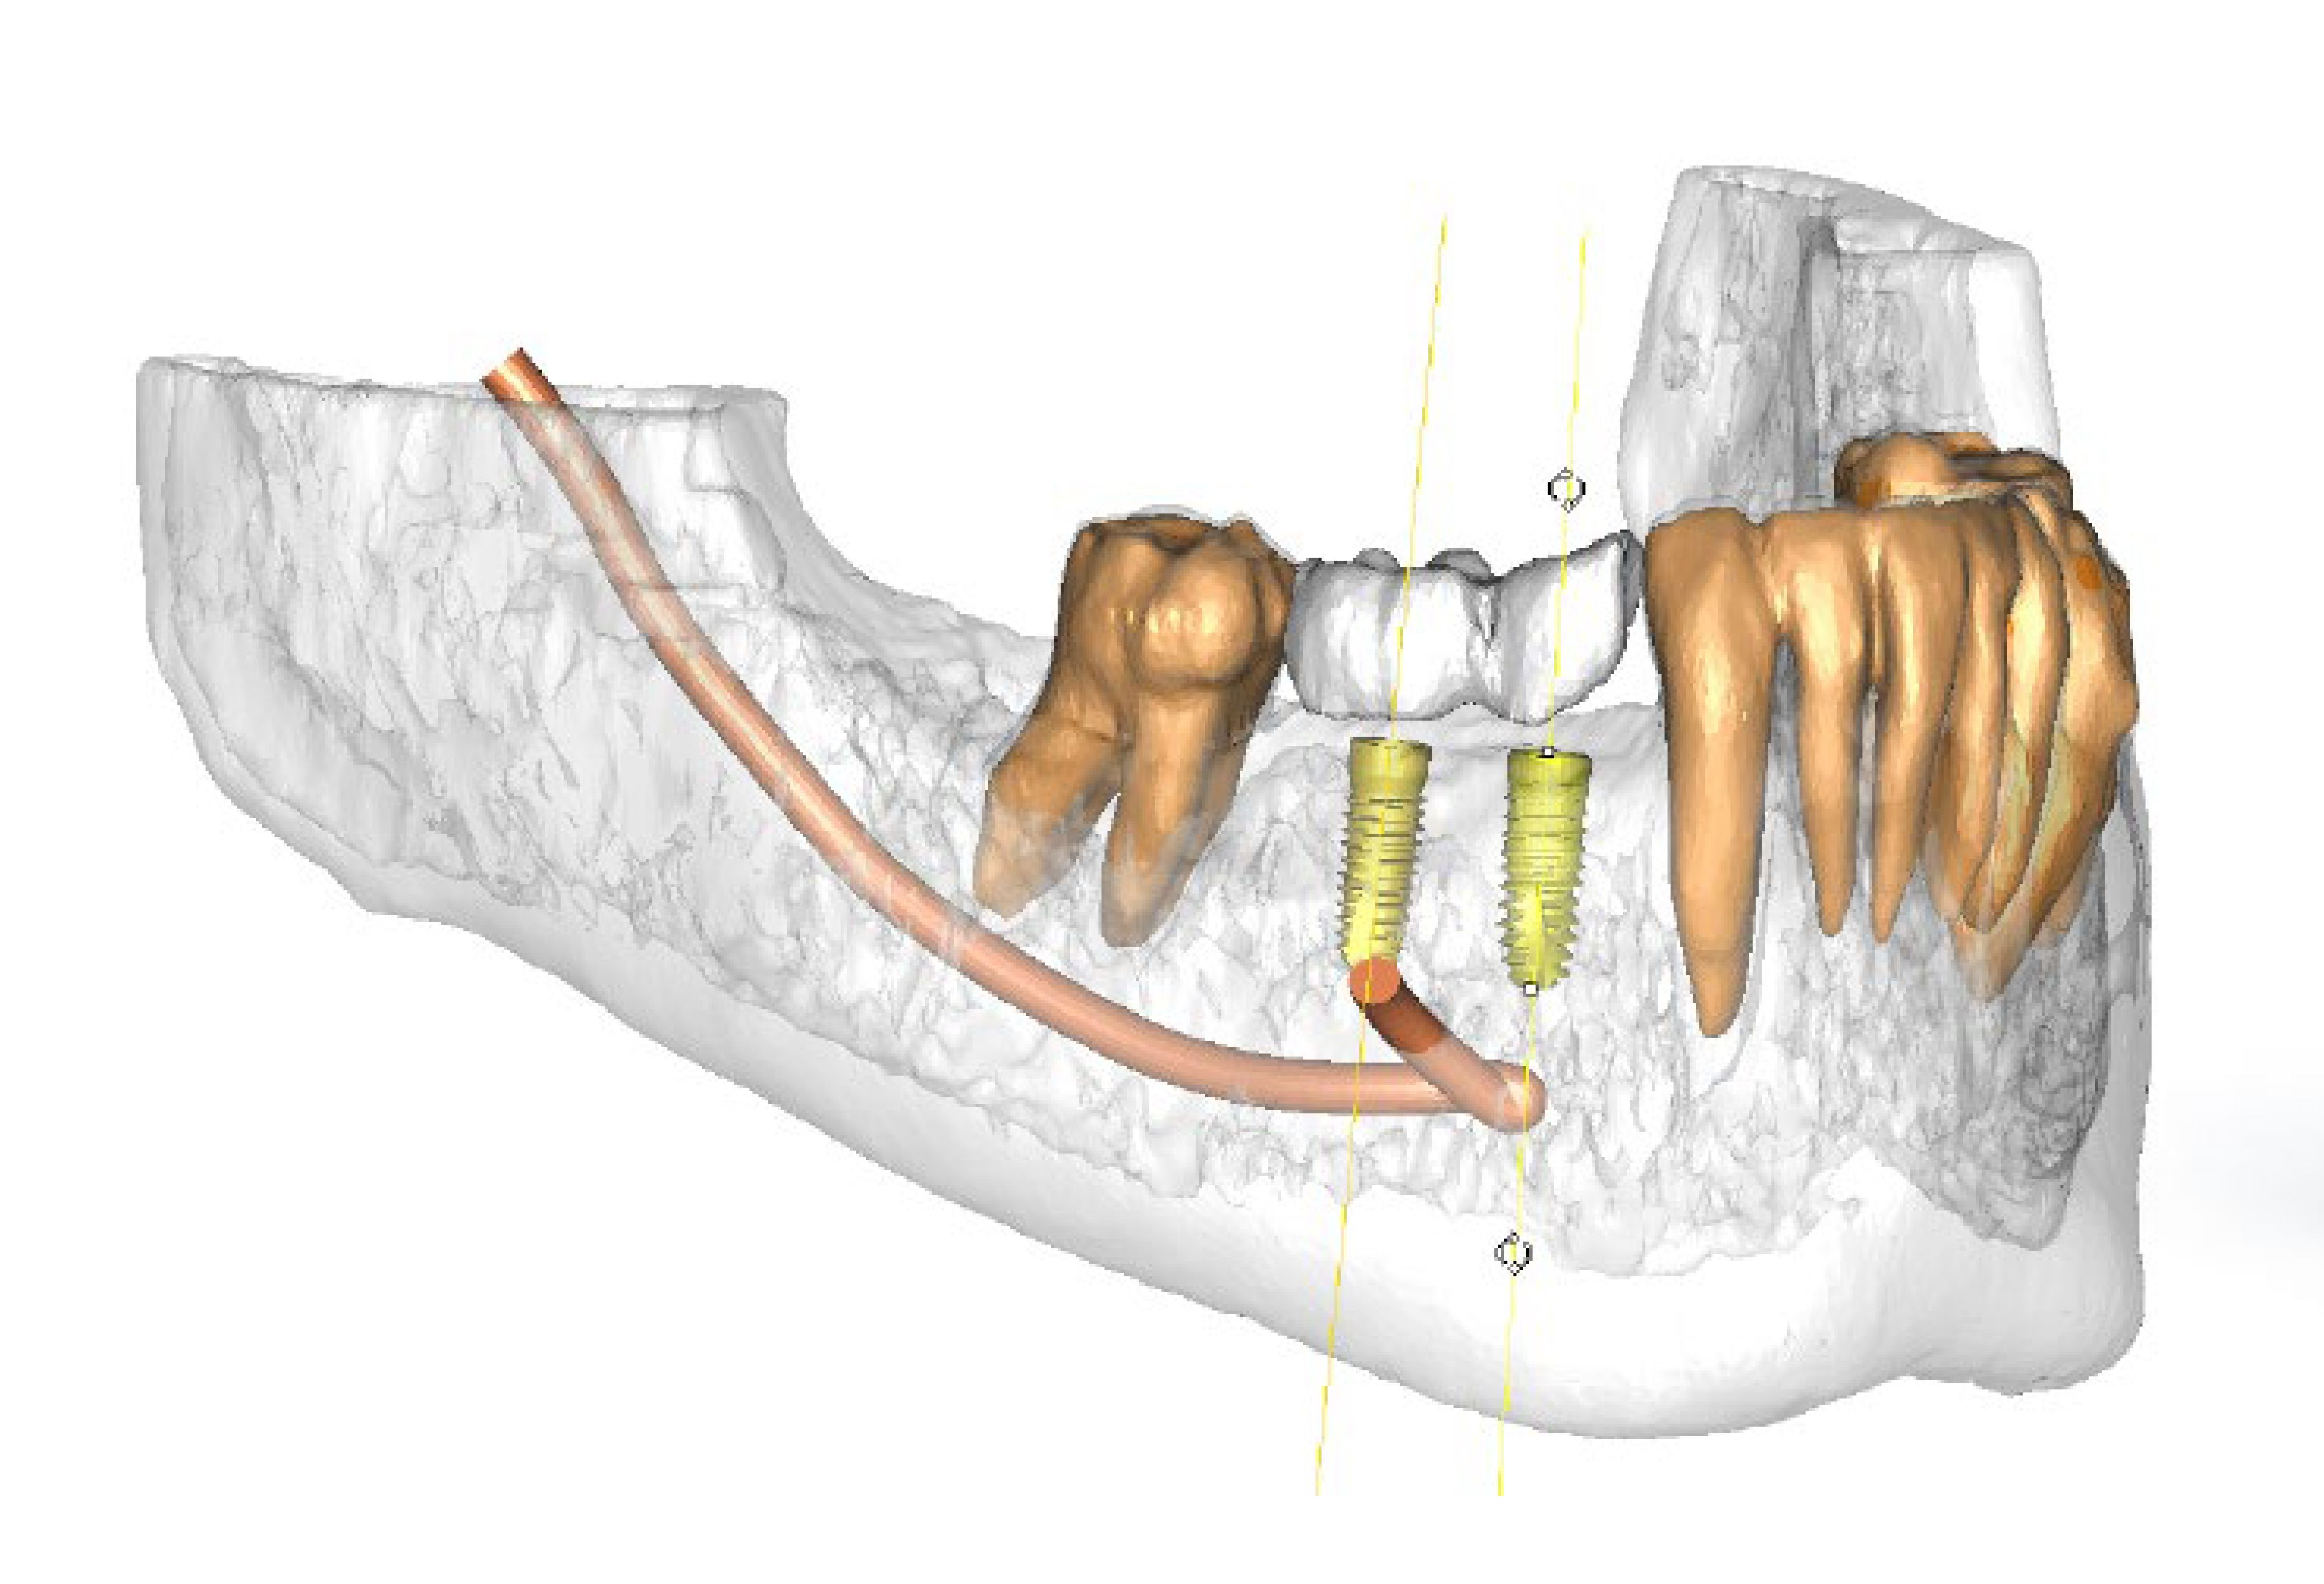 Implant dentistry planning technology